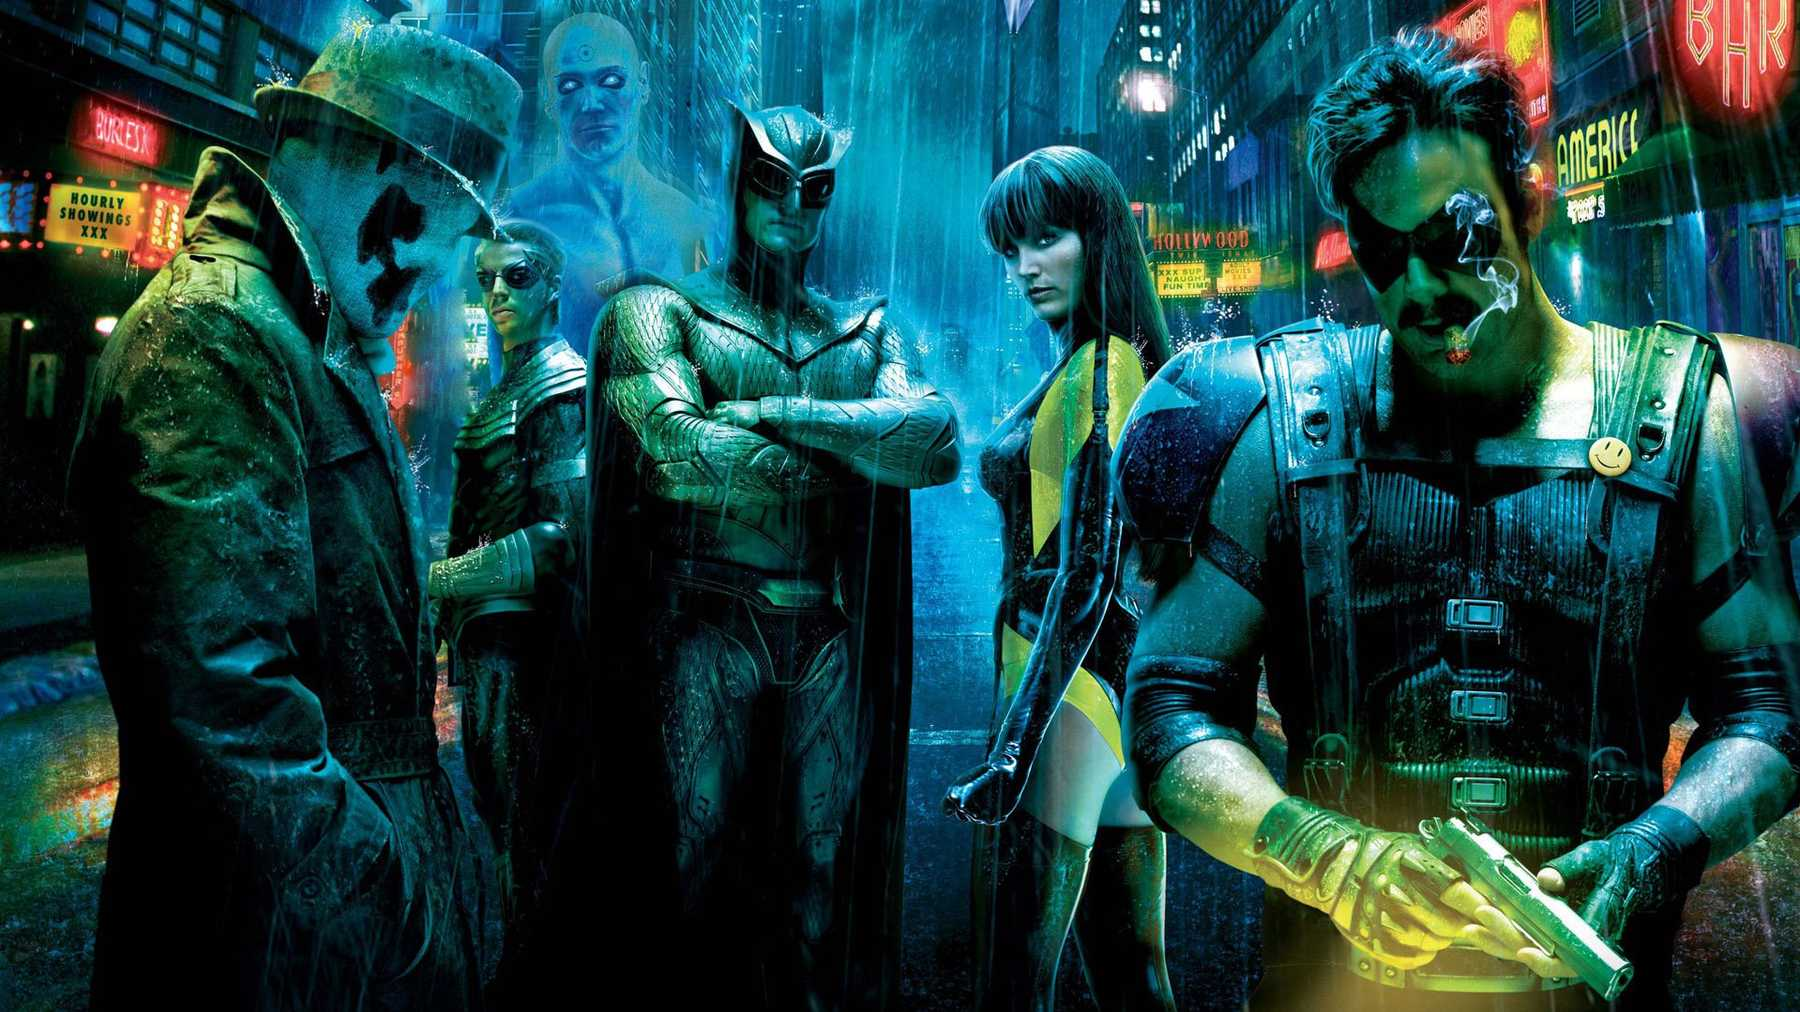 Watchmen streaming on HBO